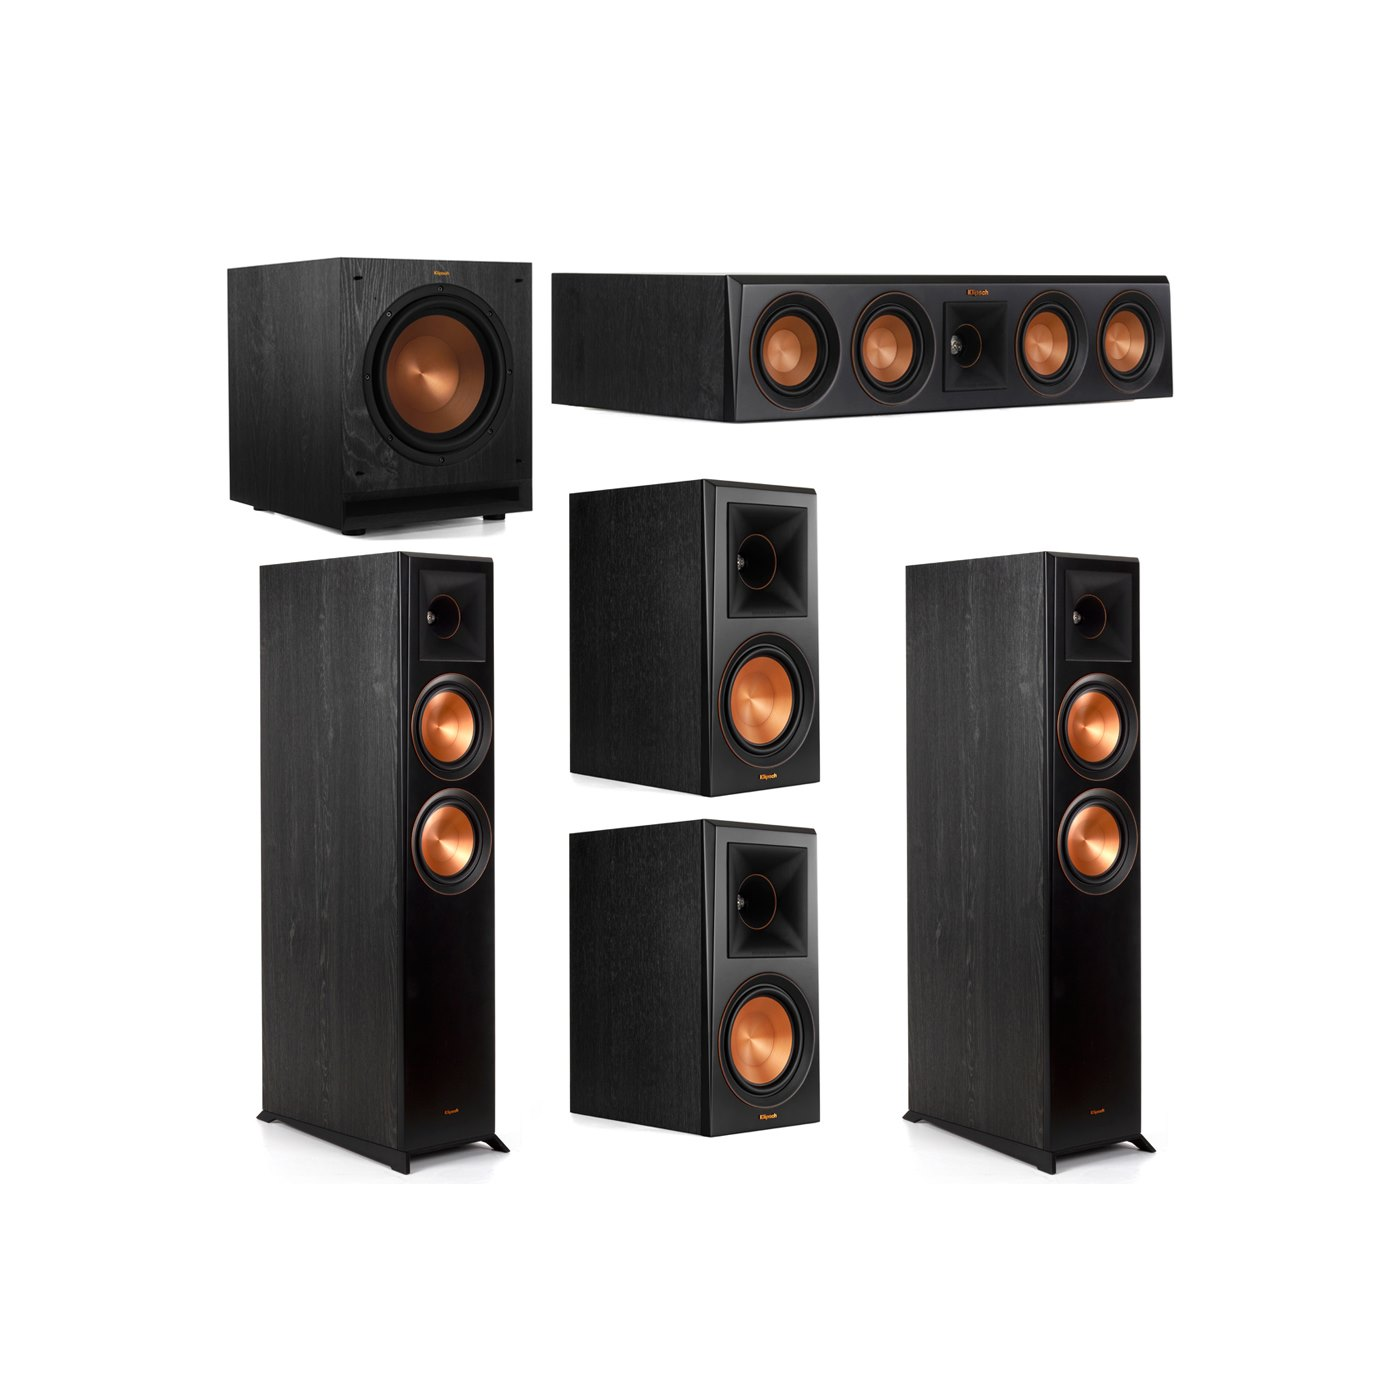 Klipsch 5.1 System with 2 RP-6000F Floorstanding Speakers, 1 Klipsch RP-404C Center Speaker, 2 Klipsch RP-600M Surround Speakers, 1 Klipsch SPL-100 Subwoofer